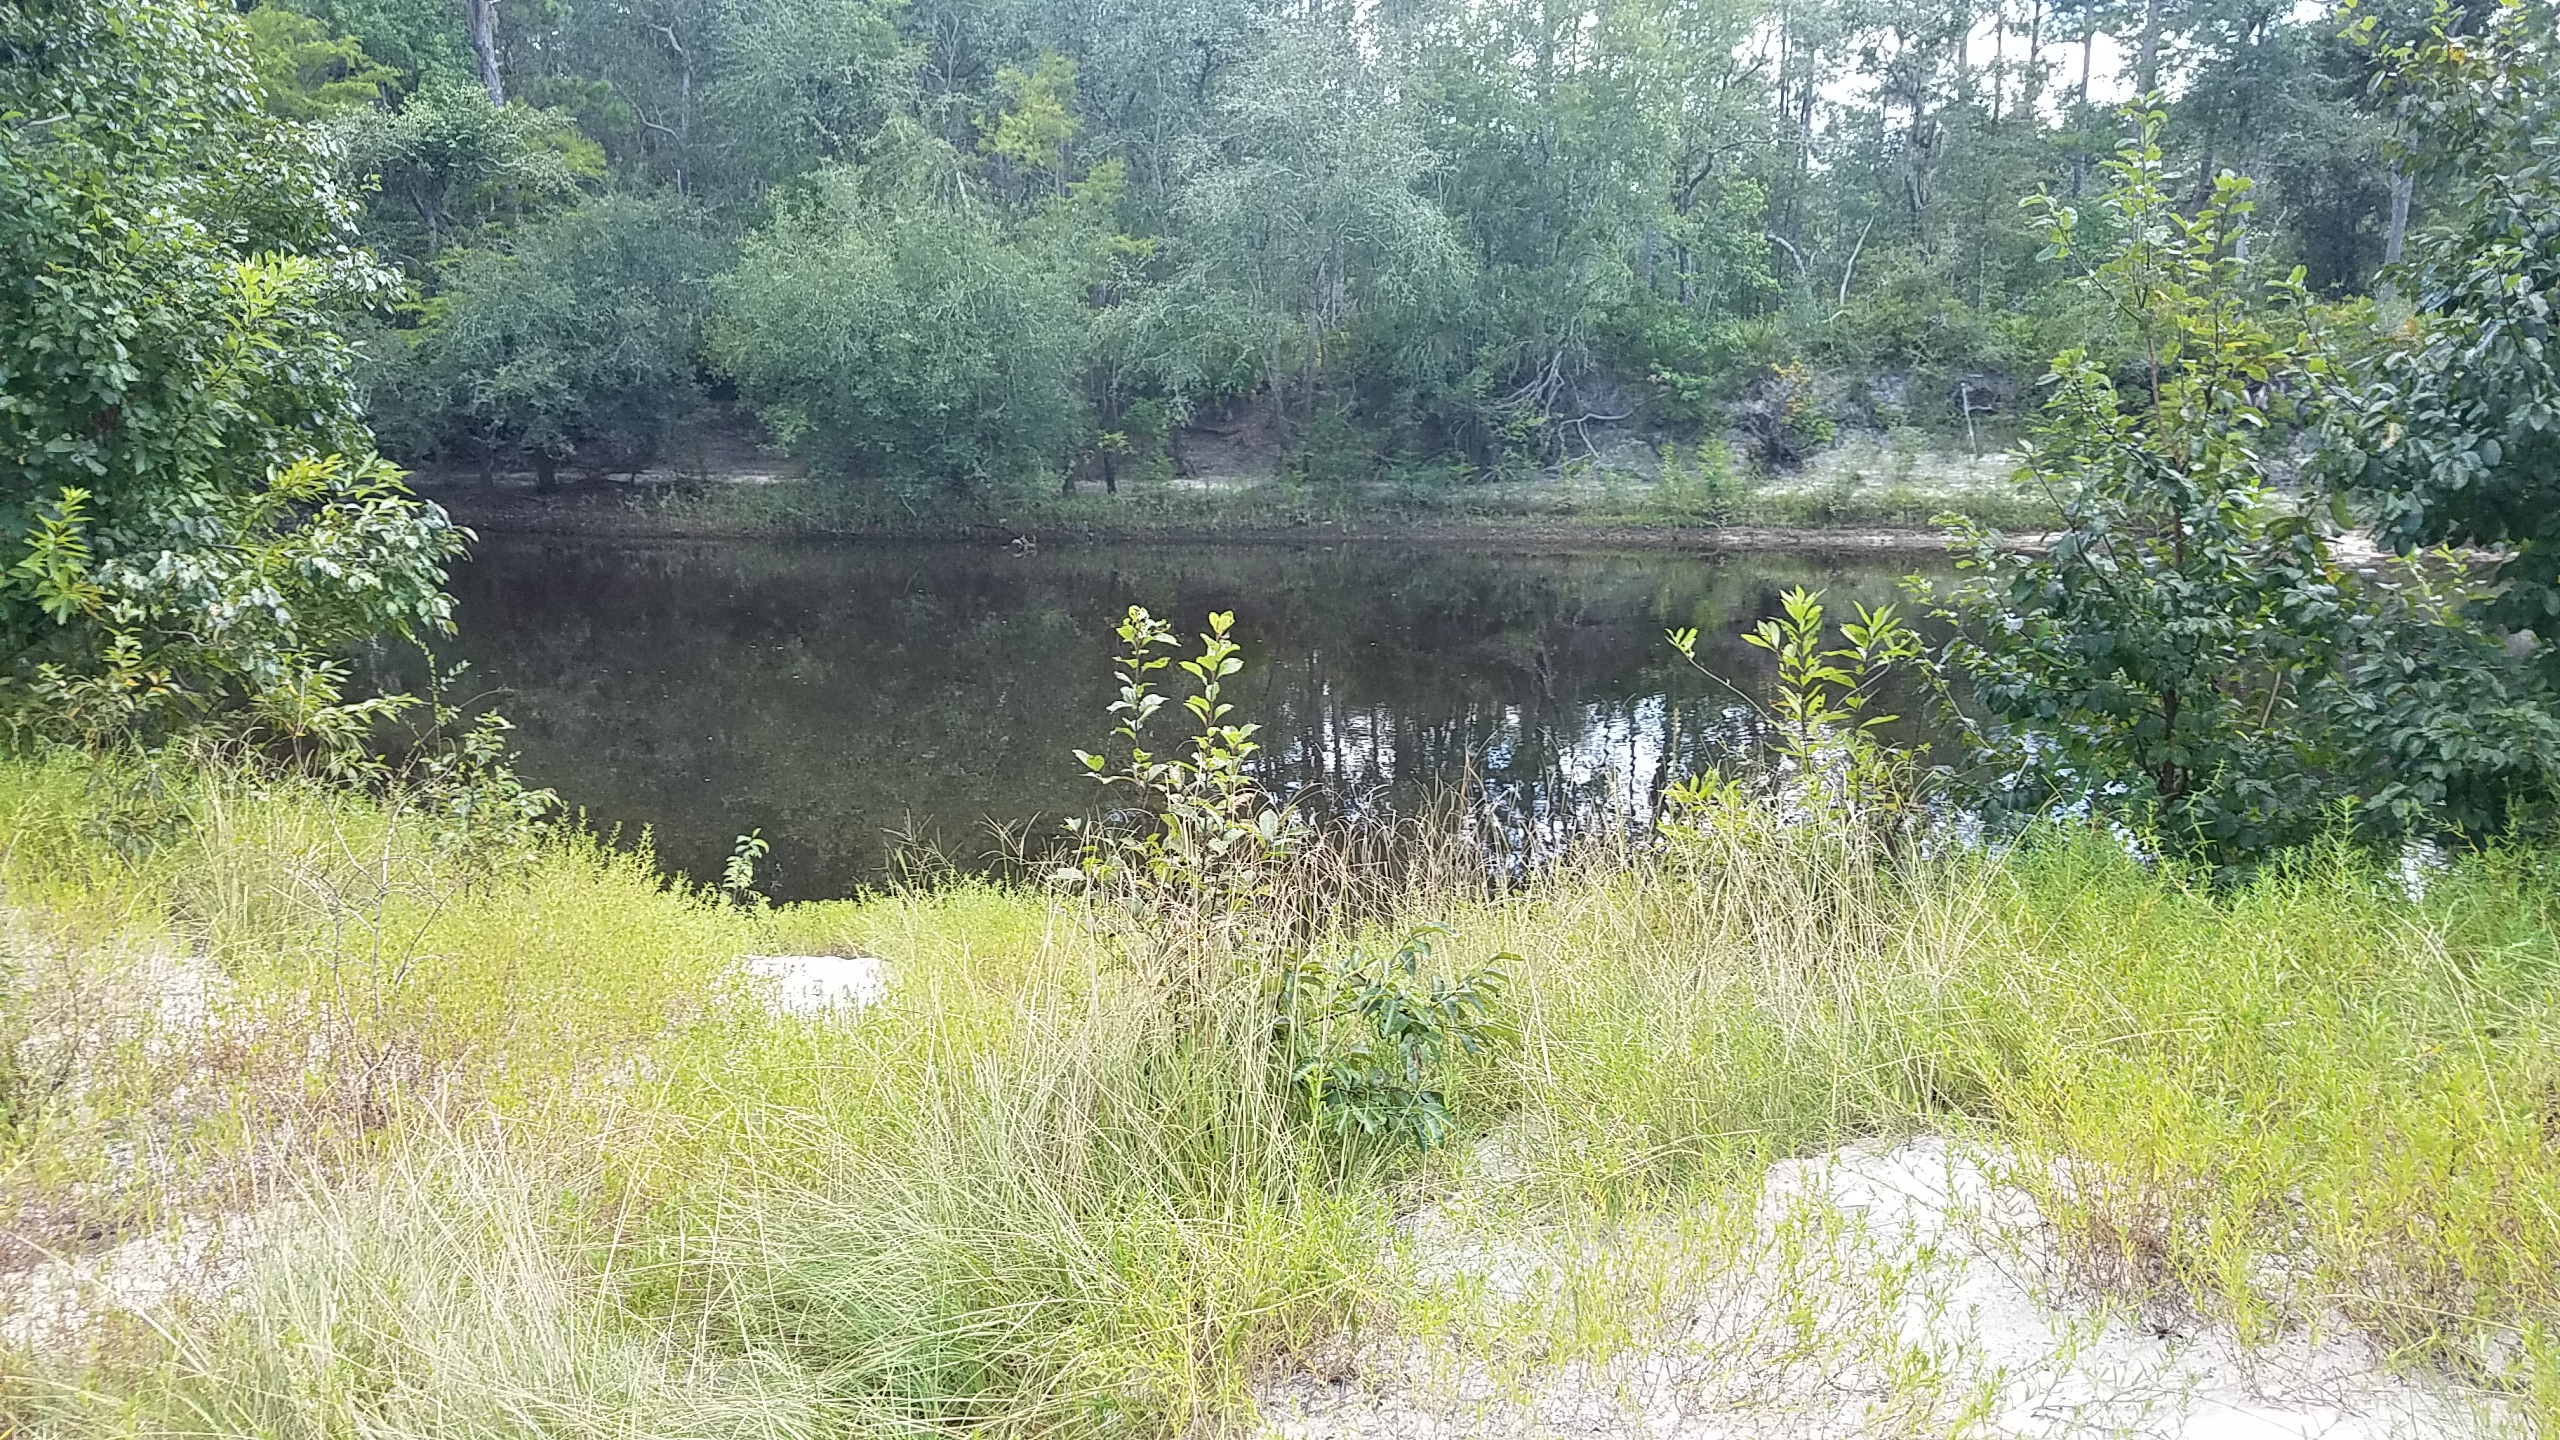 2560x1440 Green grass and blackwater, in Pafford's Landing, Alapaha River, by John S. Quarterman, for WWALS.net, 24 August 2017